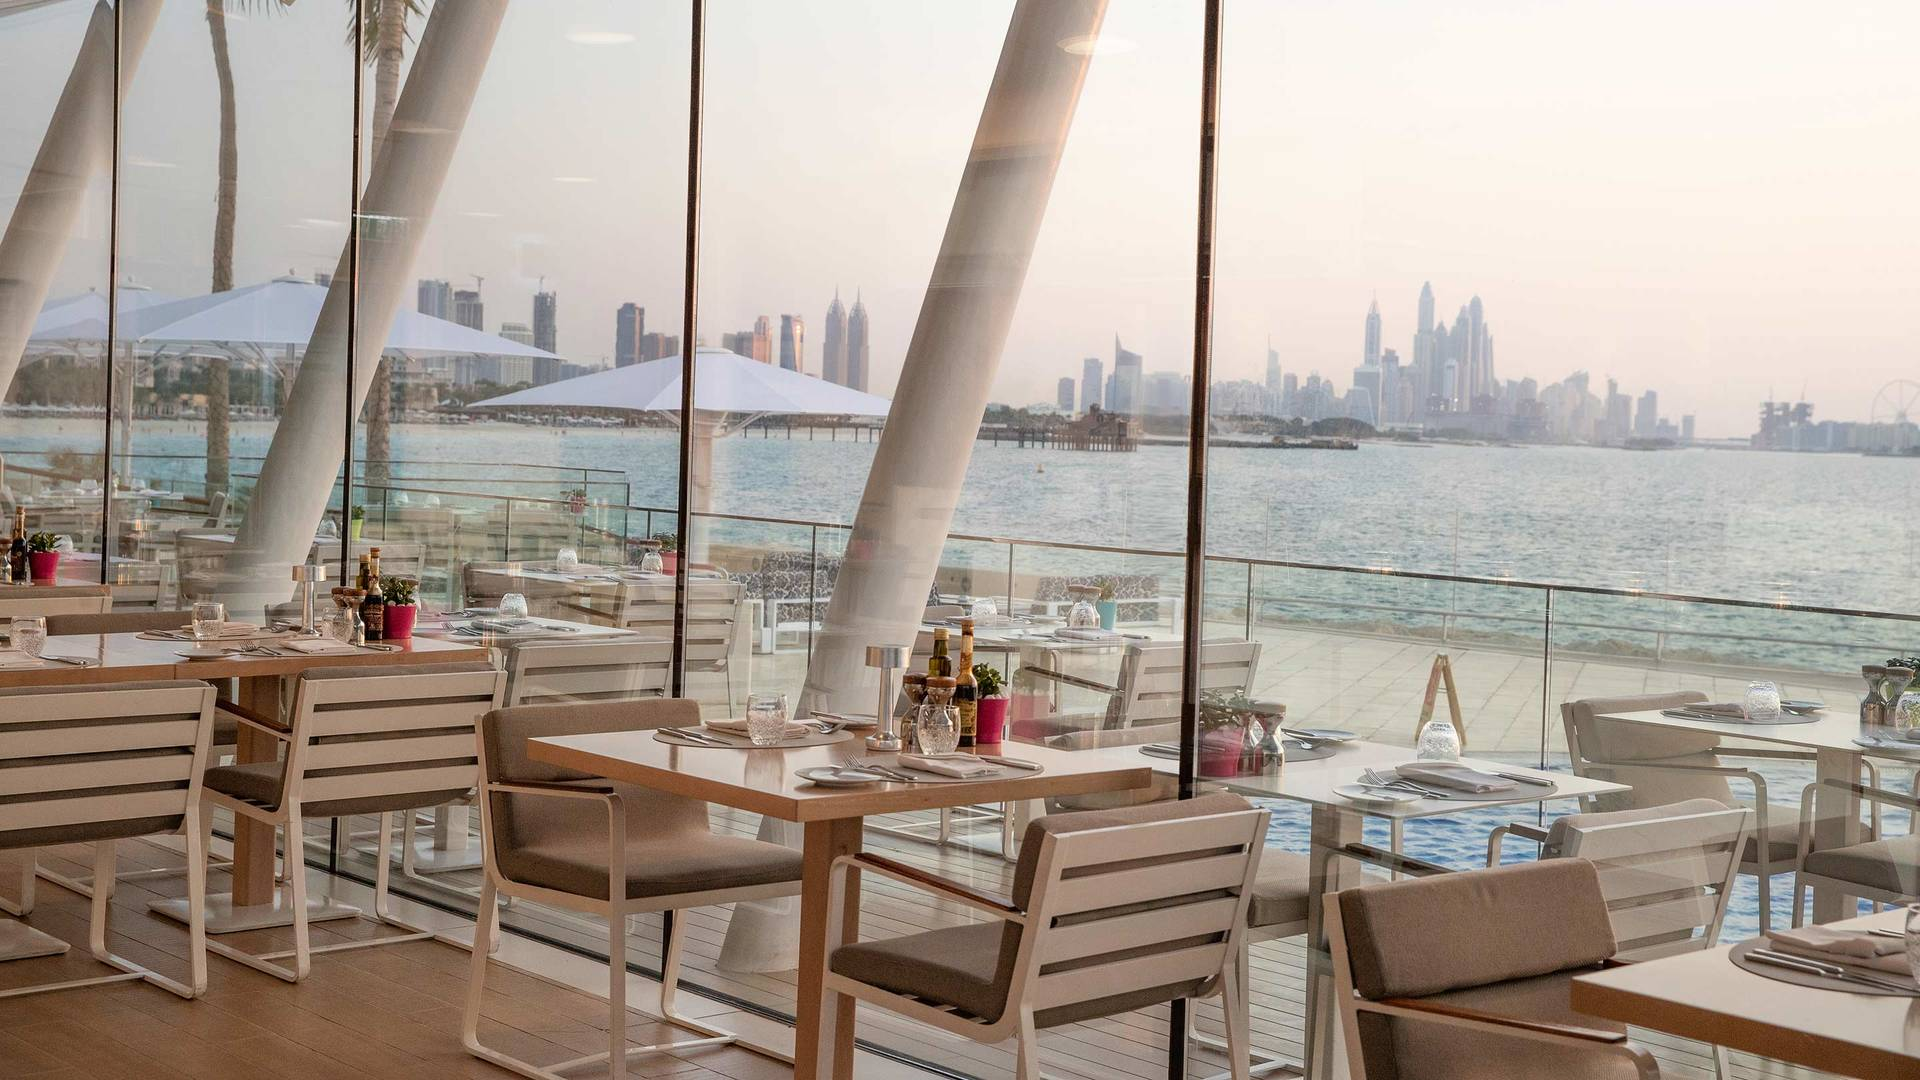 Jumeirah Burj Al Arab Bab Al Yam restaurant with beach and city view